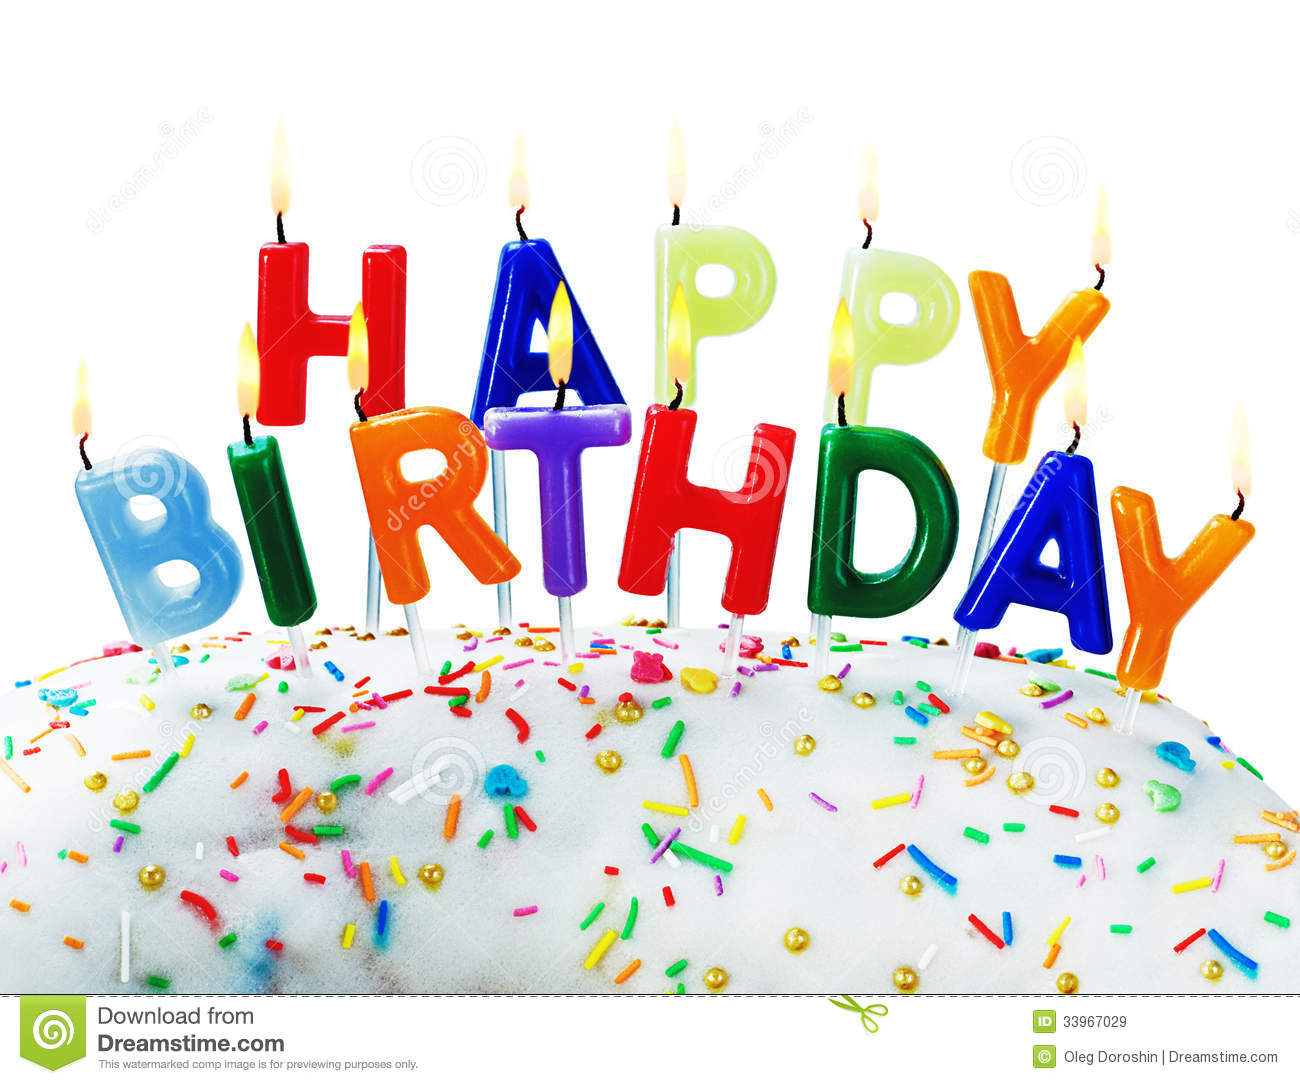 birthday greetings images pictures ; birthday-greetings-burning-candles-white-background-33967029